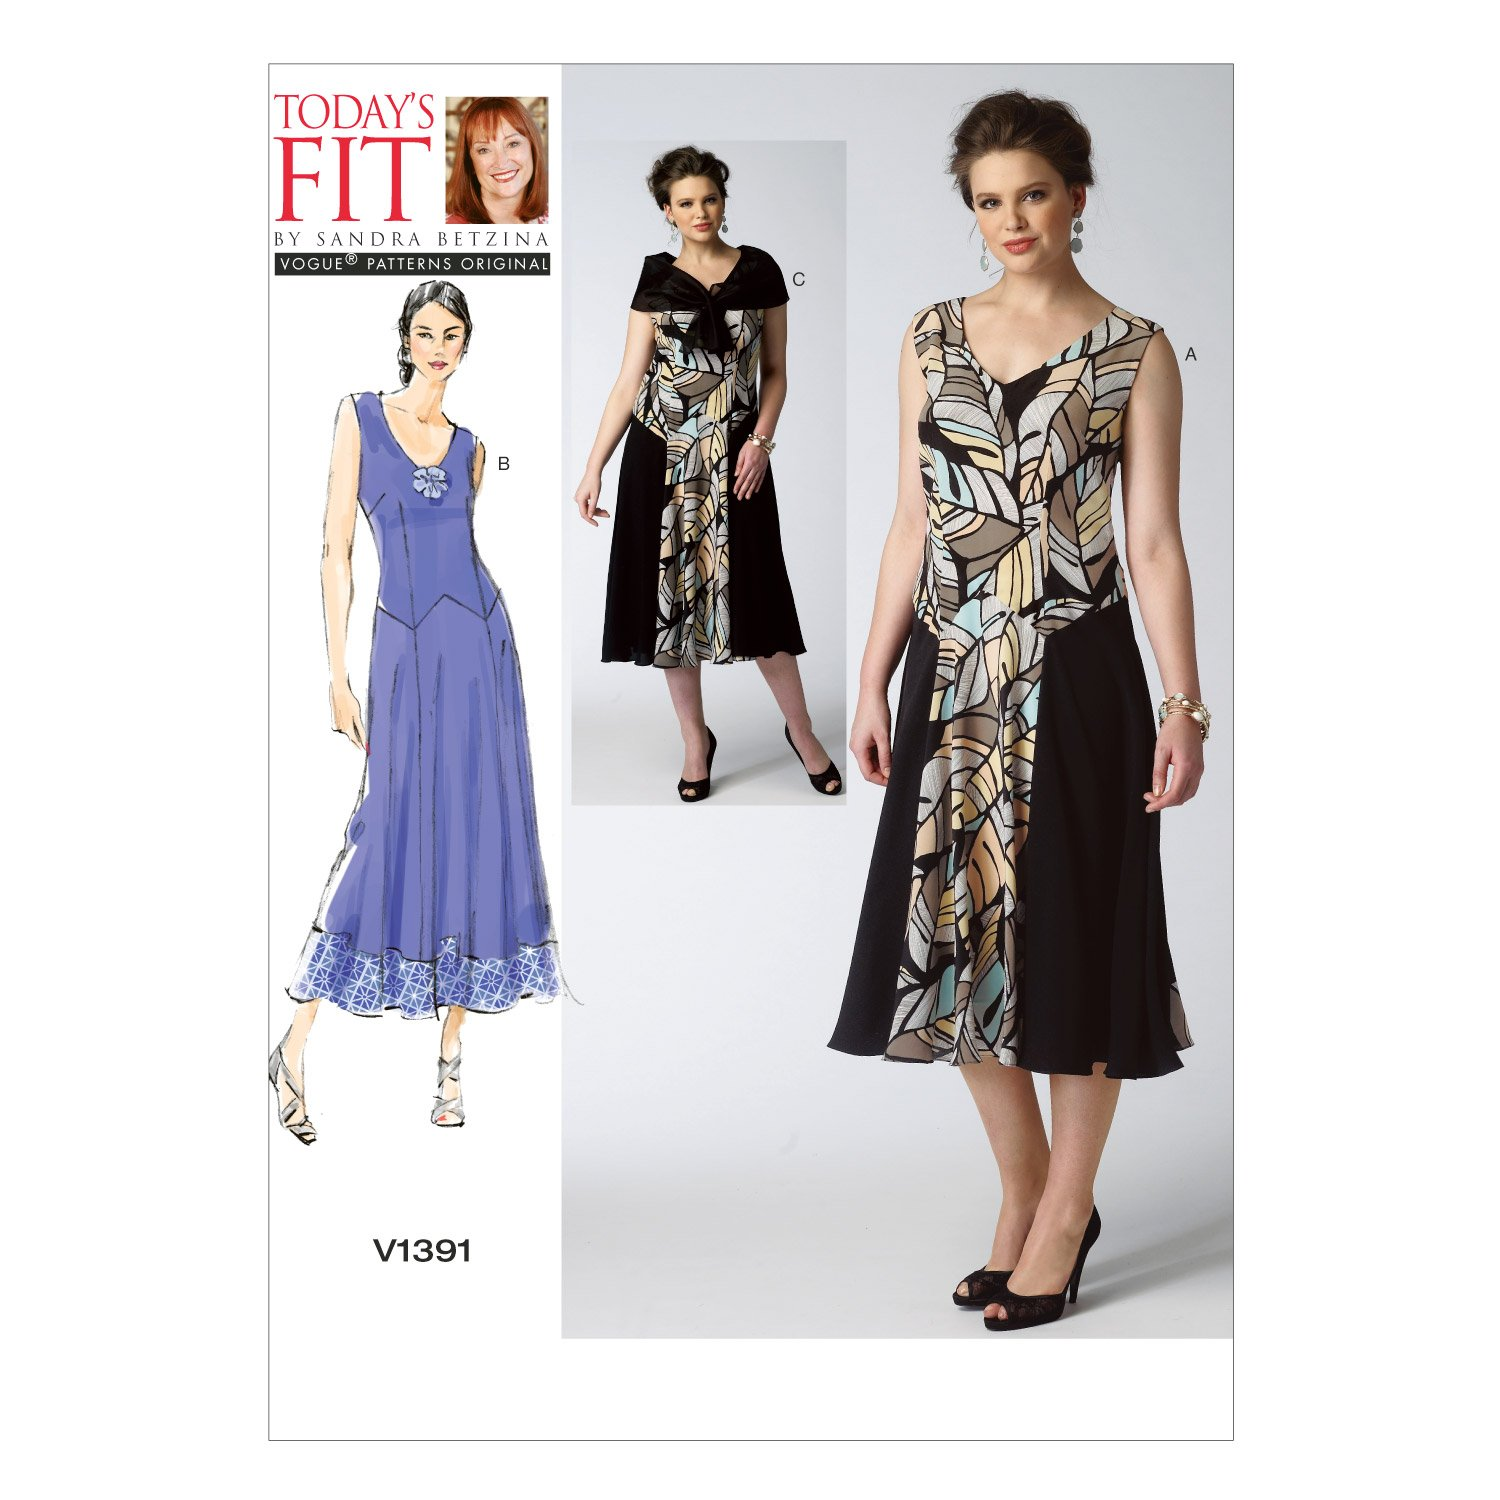 Vogue Patterns V1391 Misses' Dress and Detachable Capelet Sewing Template, All Sizes by Vogue Patterns B00JQAQQX0